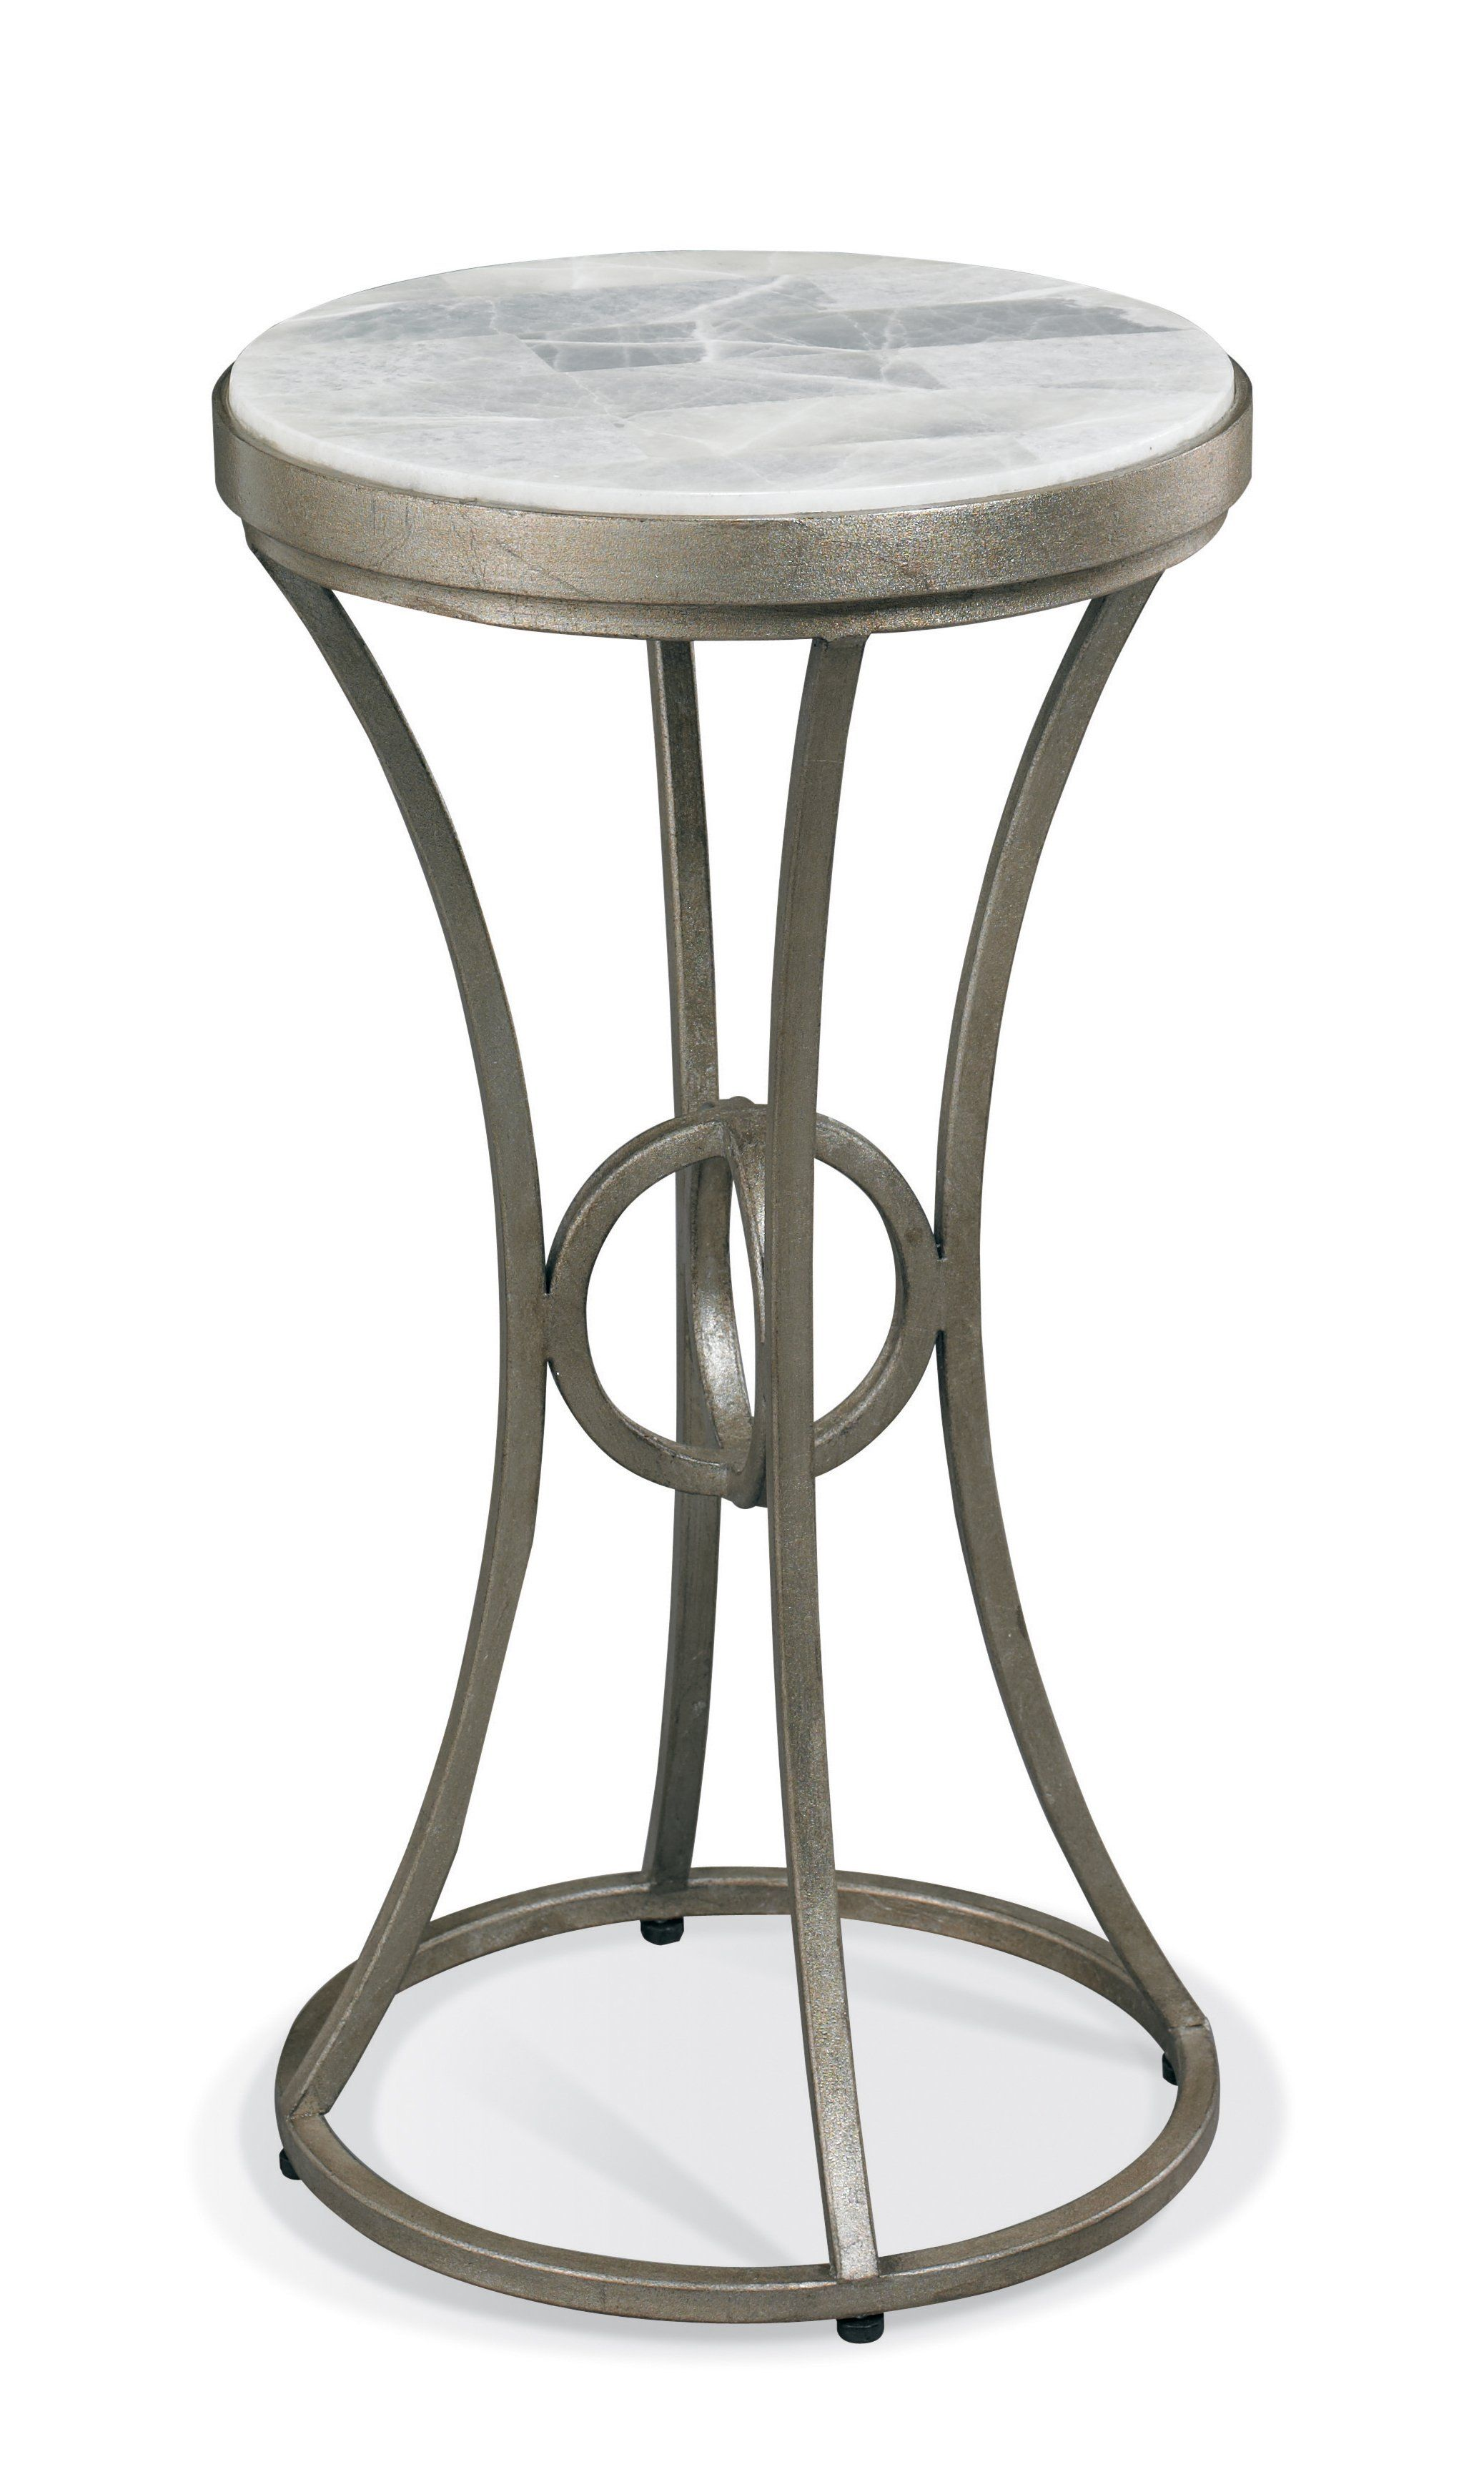 eclipse spot table products round gray accent uttermost laton mirrored marble with chairs antique white square coffee small nightstand lamps bedroom mirrors trestle pine knotty